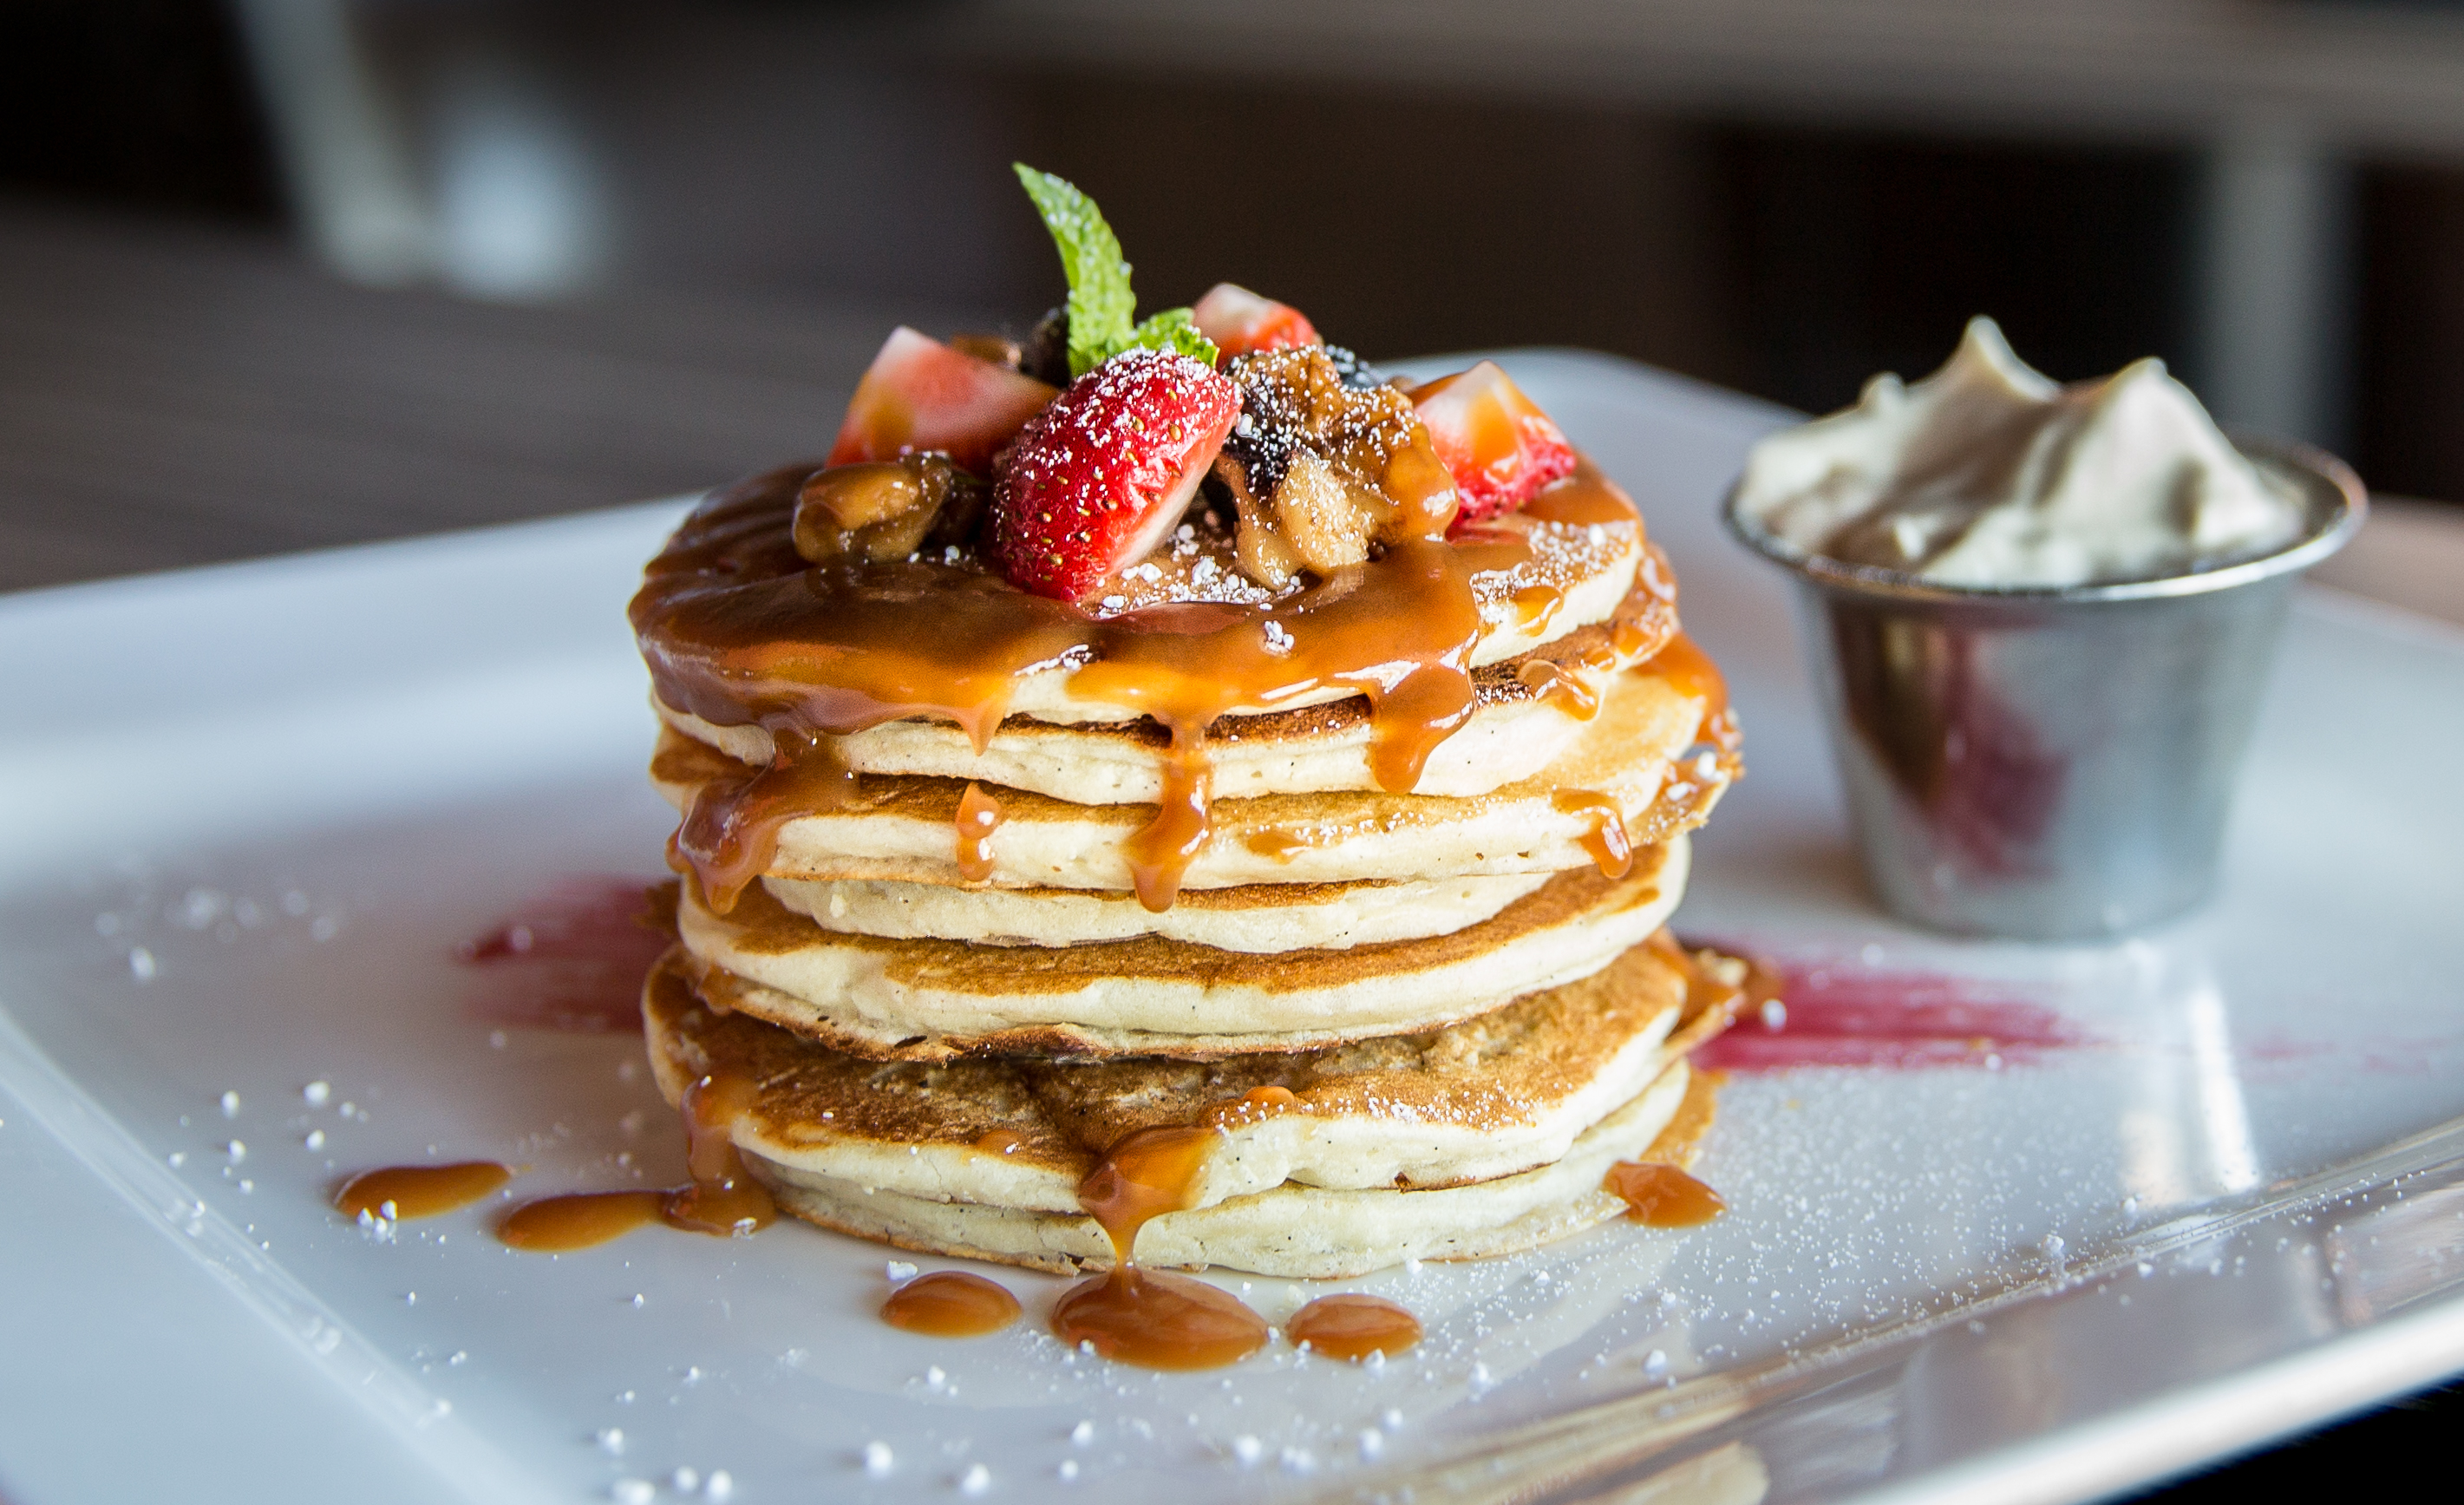 Cook and eat delicious pancakes on Family Day